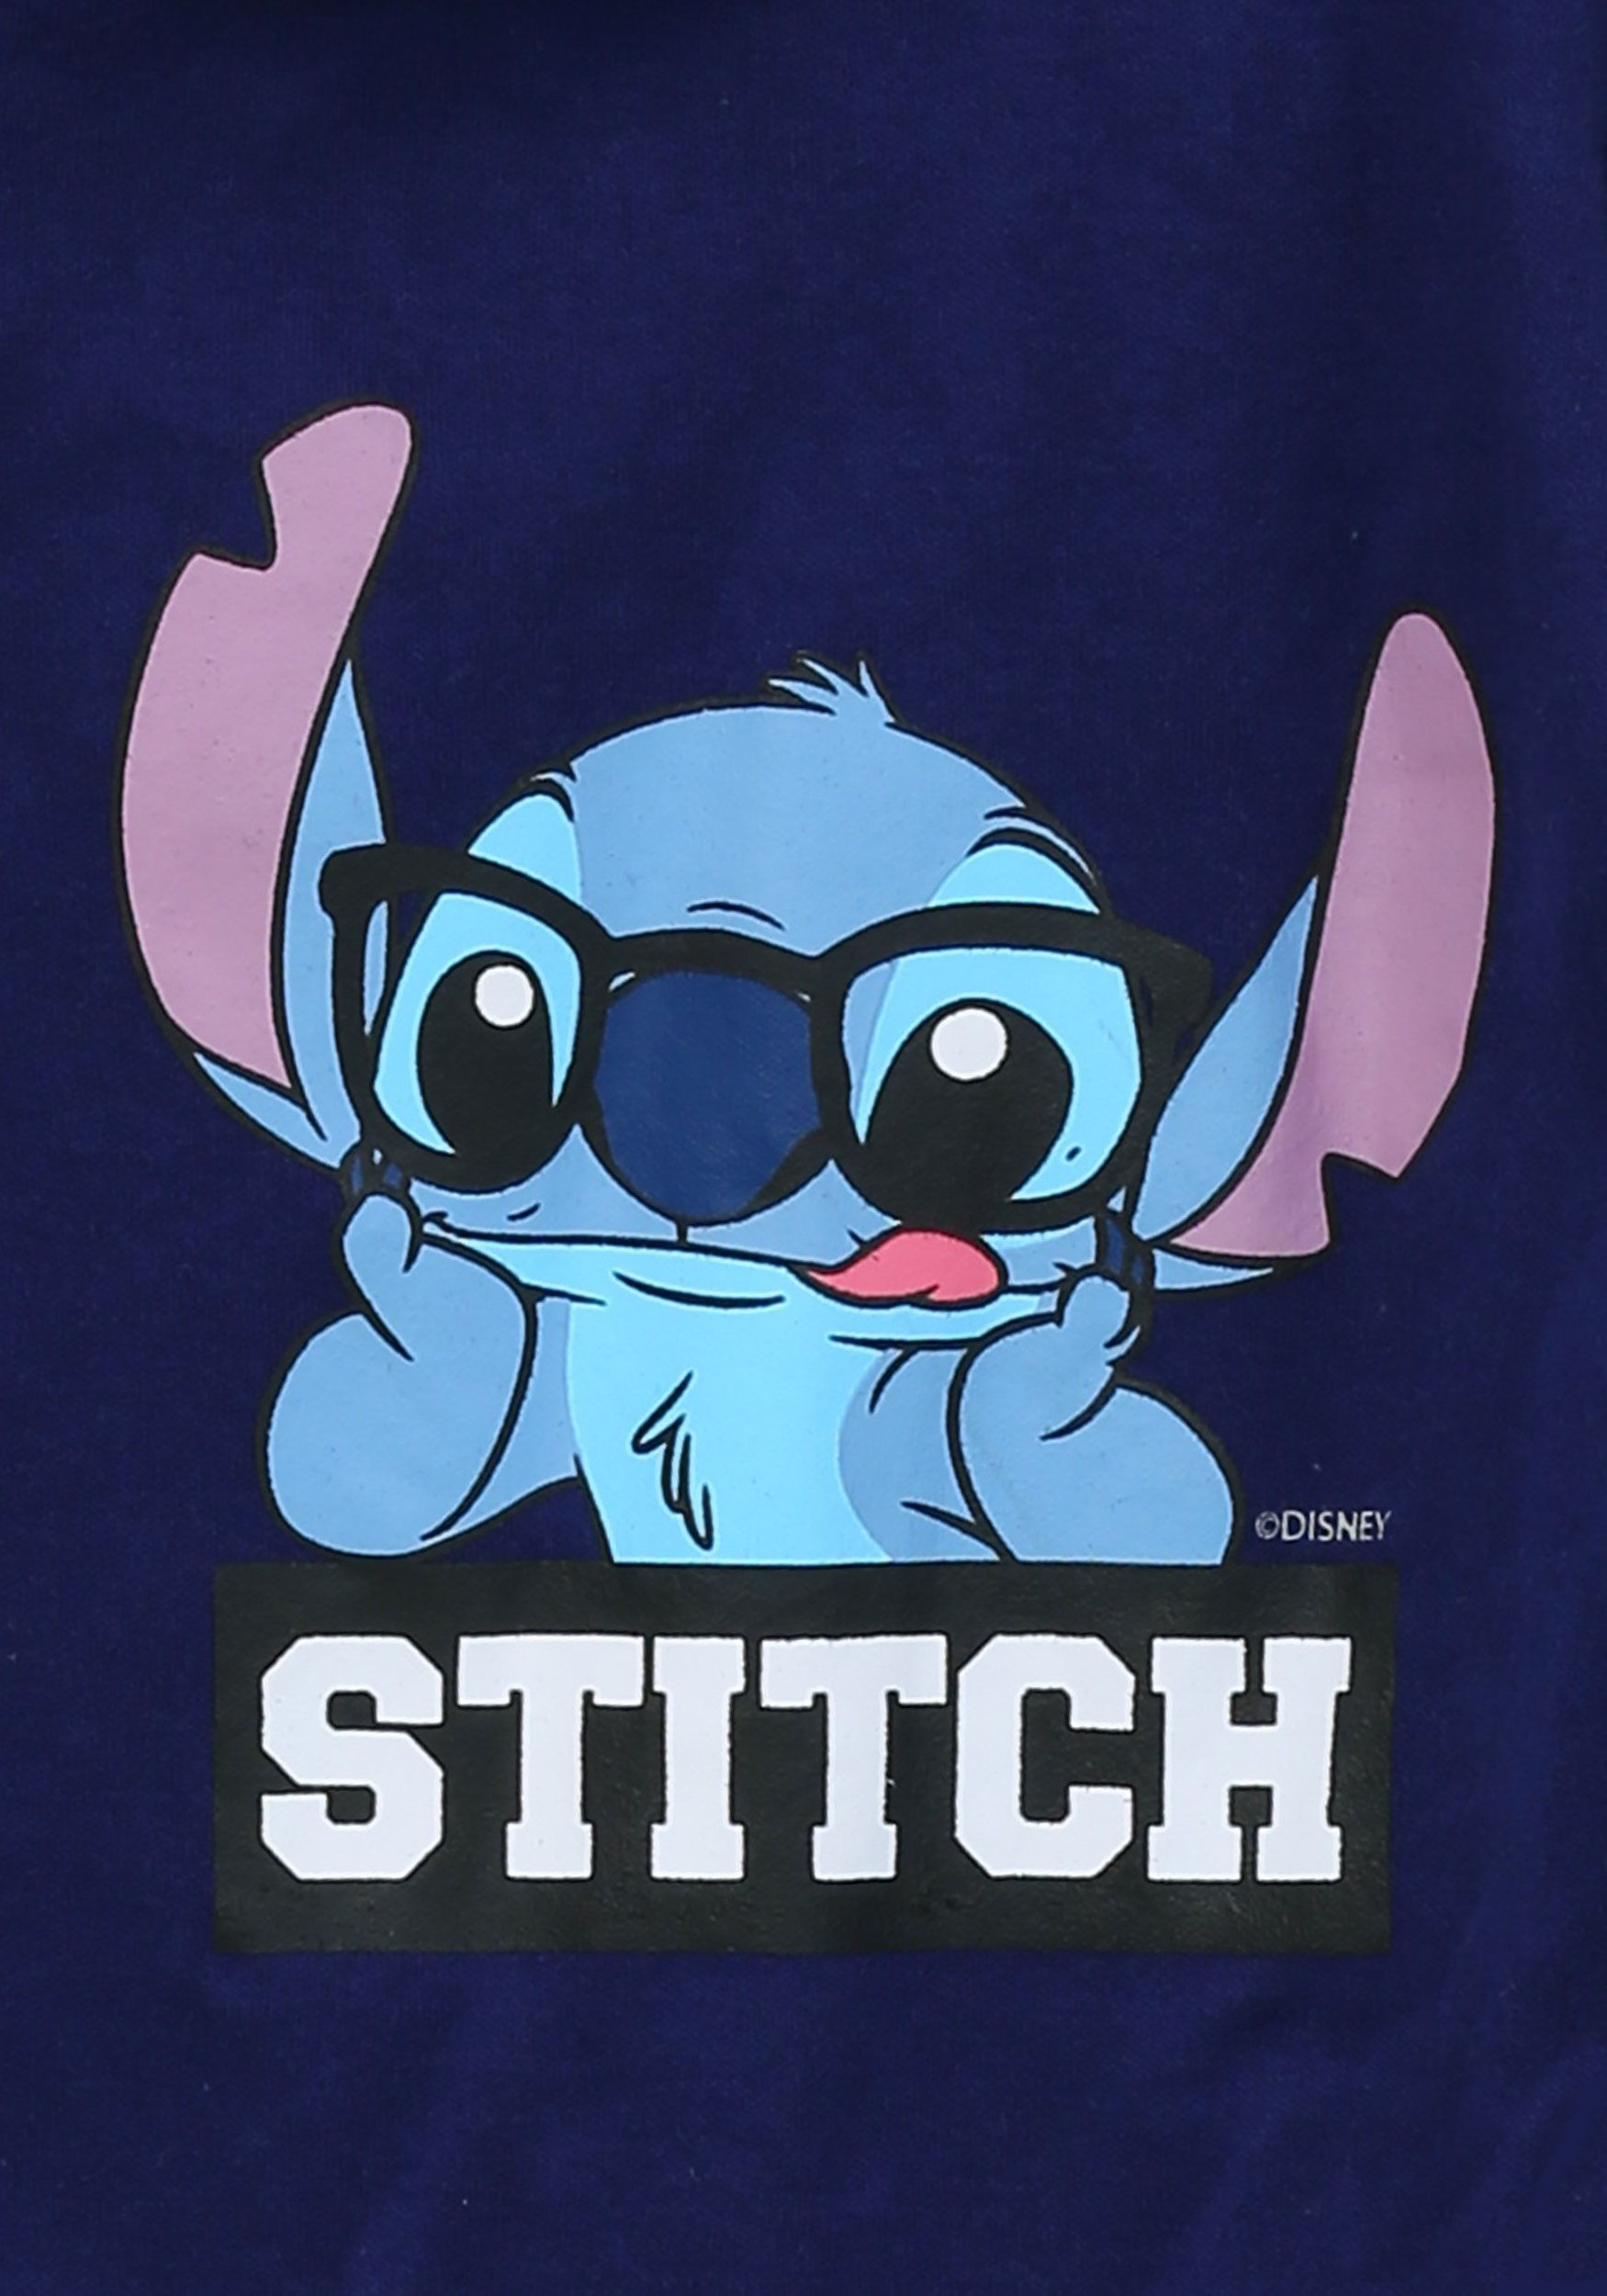 Res: 1750x2500, Womens Lilo And Stitch Reversible Hooded Sweatshirt